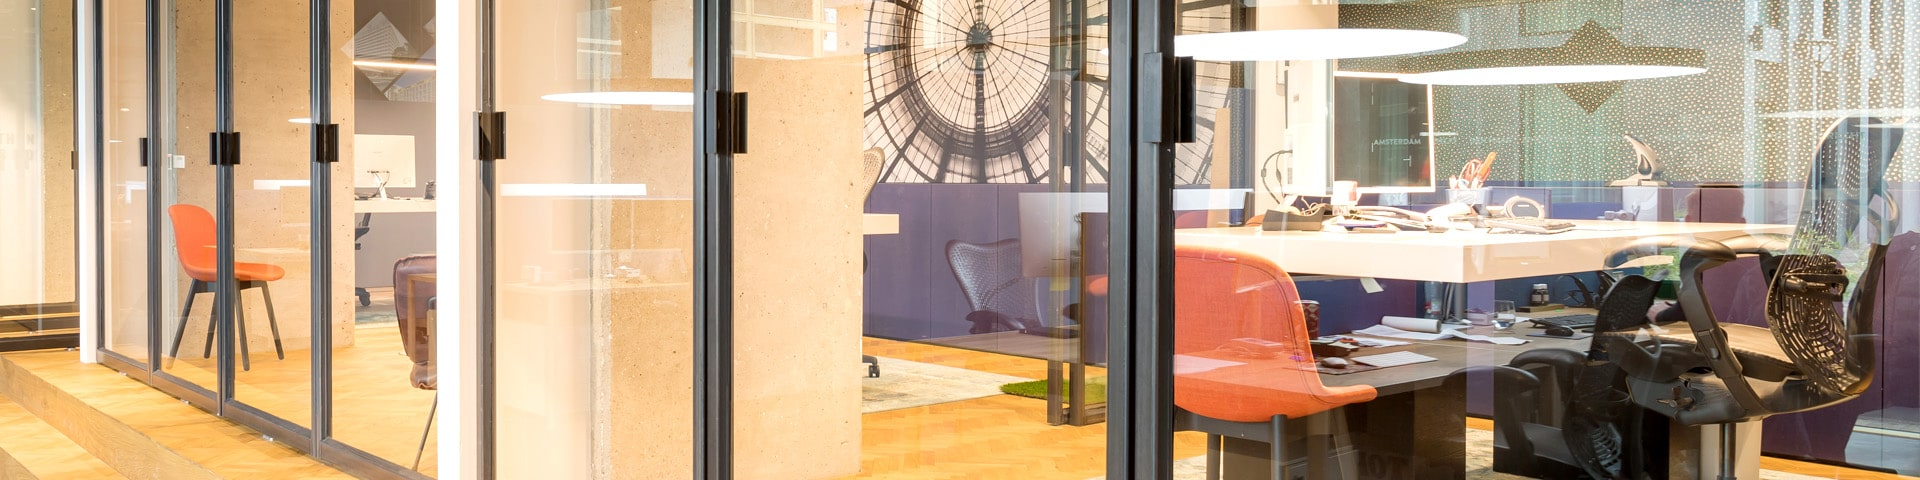 interior of Holland2Stay head office in Eindhoven